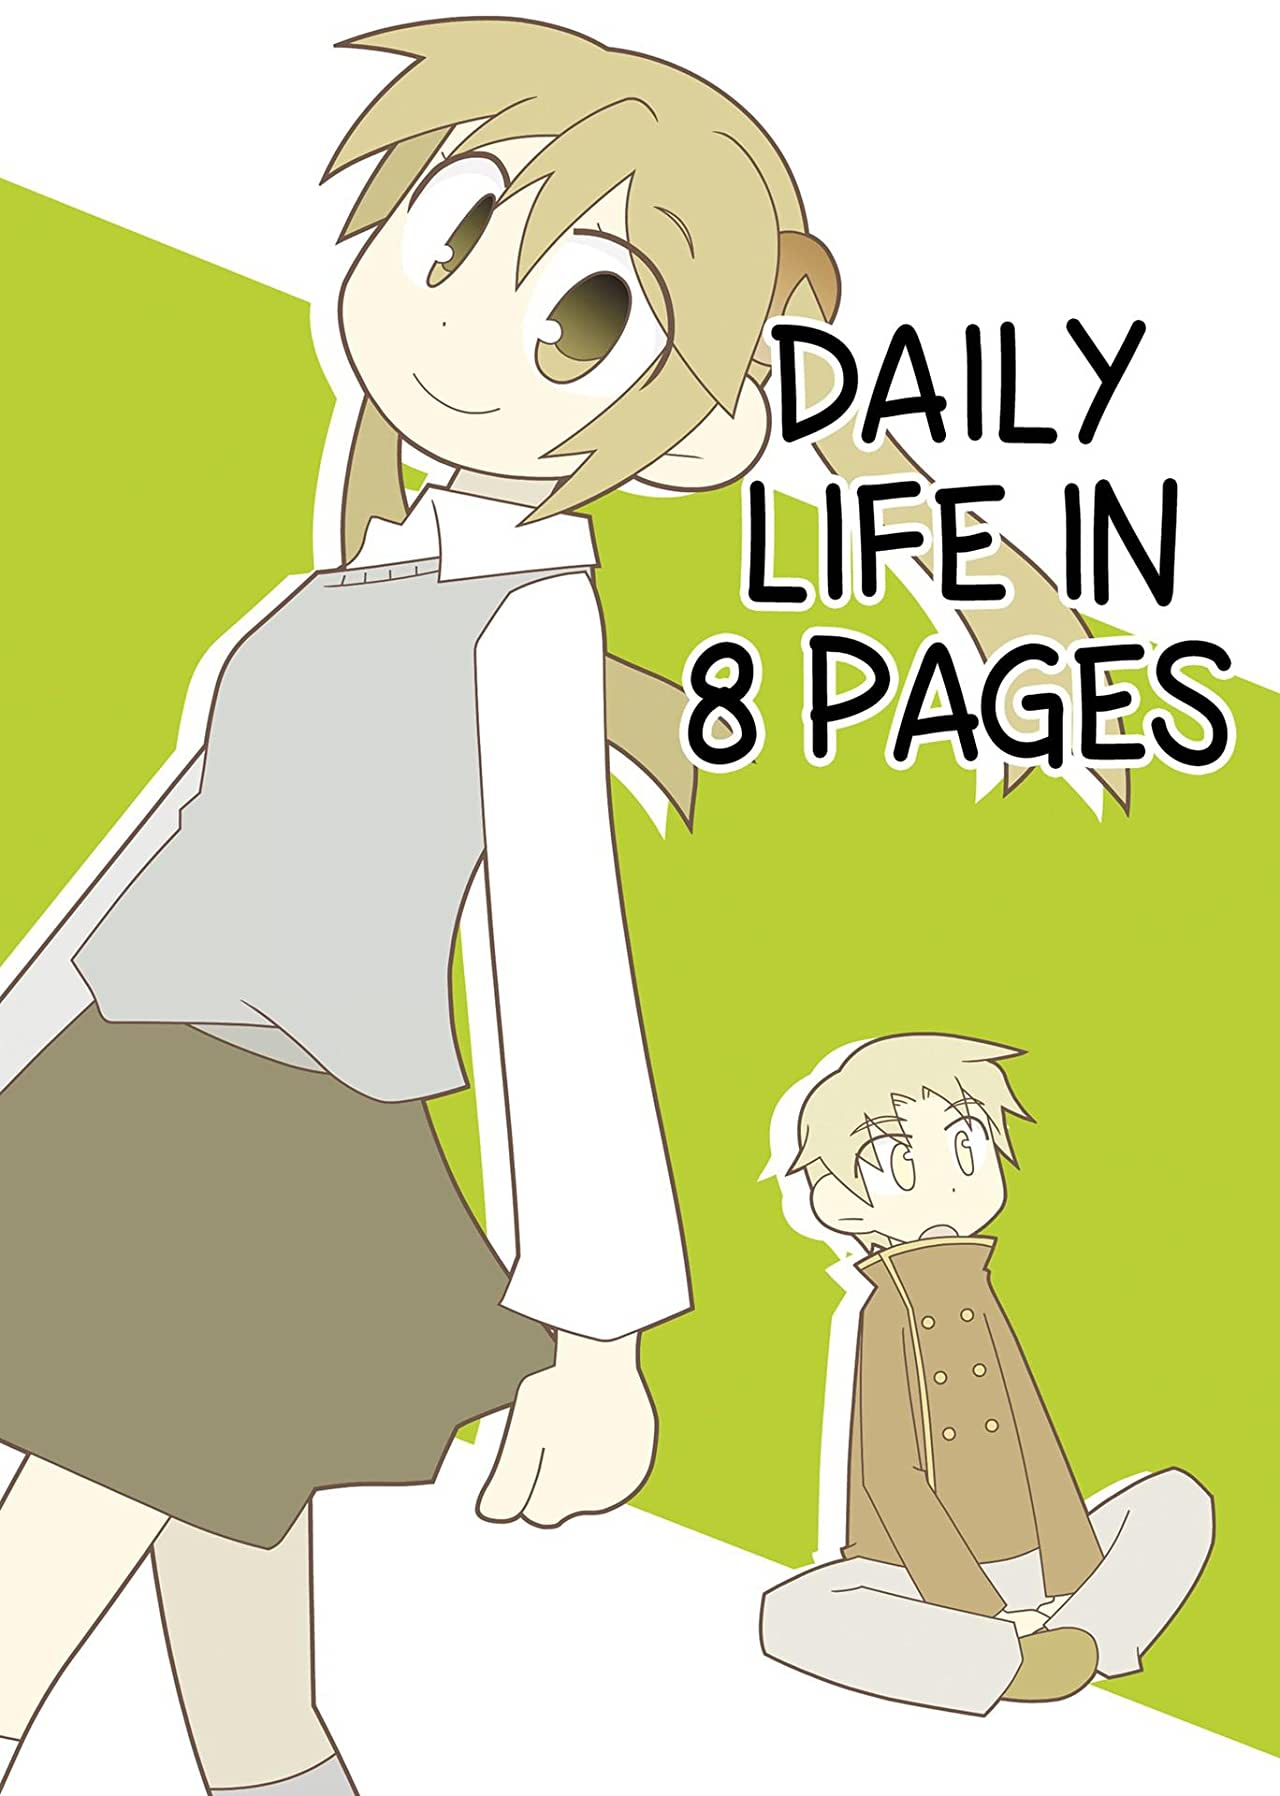 Daily Life in 8 Pages Vol. 1